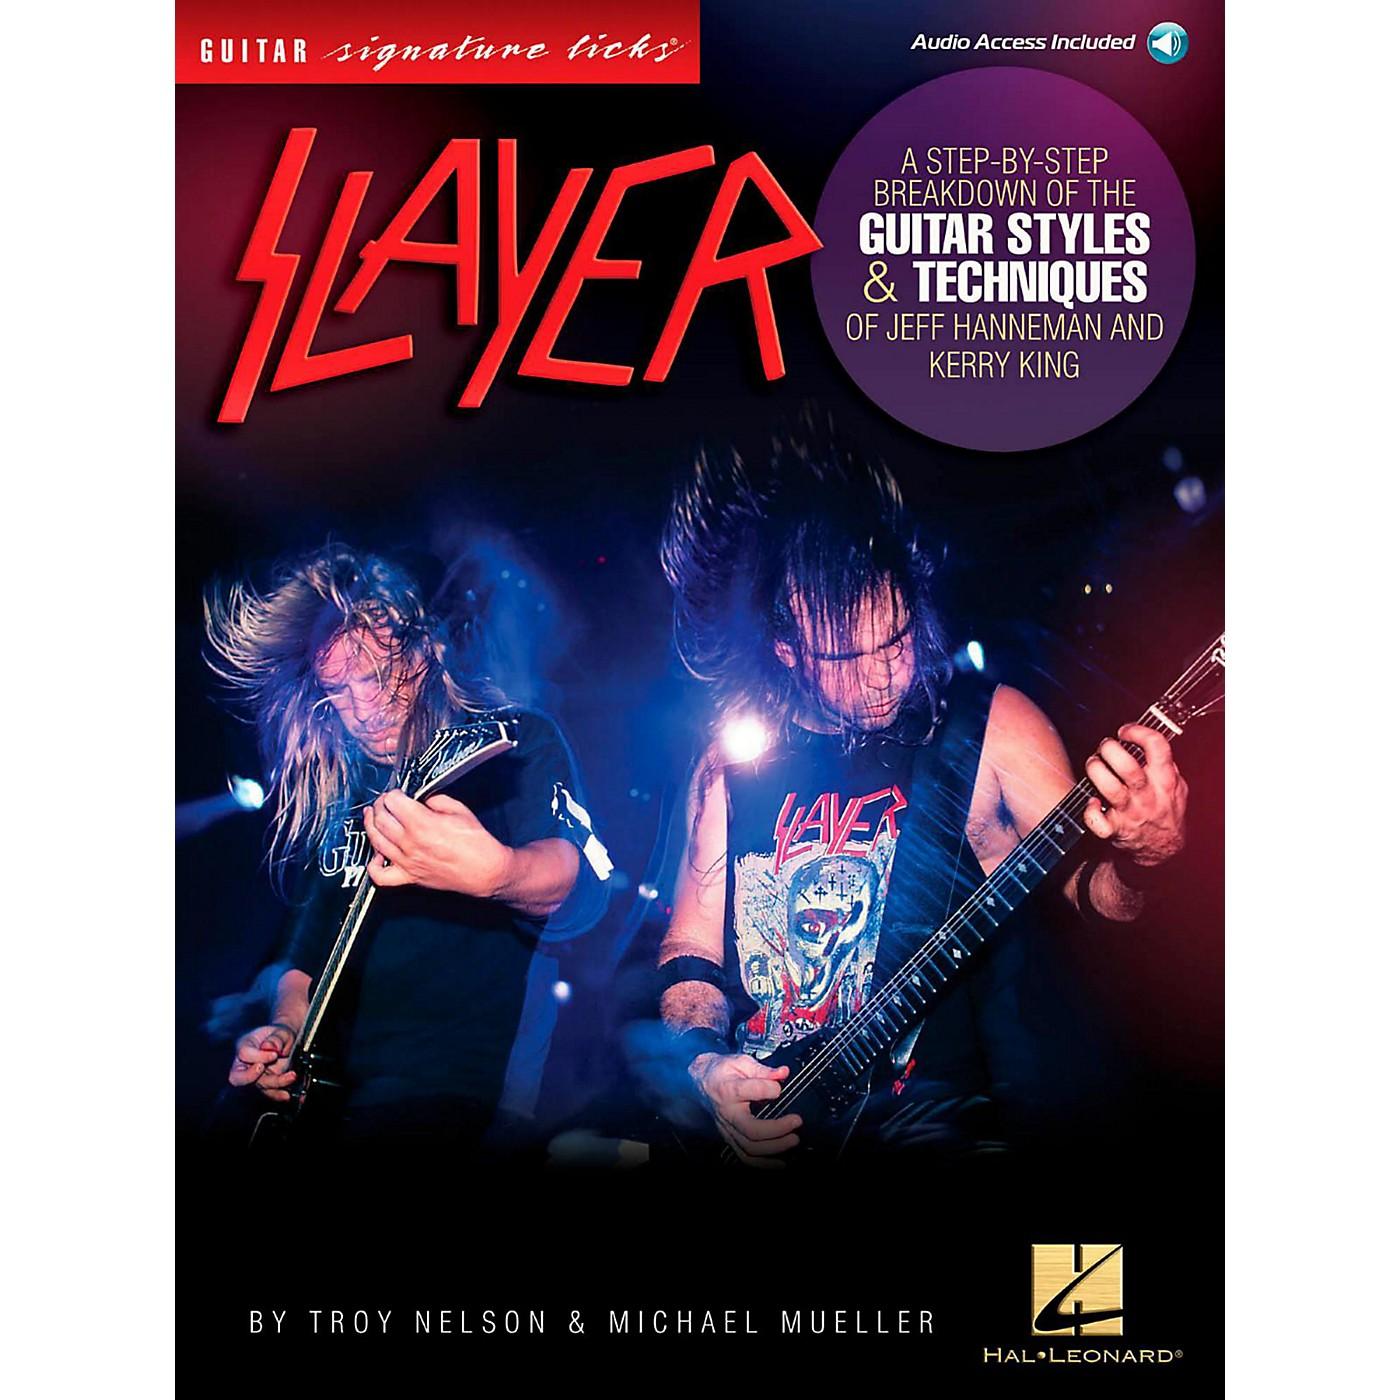 Hal Leonard Slayer Guitar Signature Licks - Styles & Techniques of Jeff Hanneman and Kerry King Book/Audio Online thumbnail